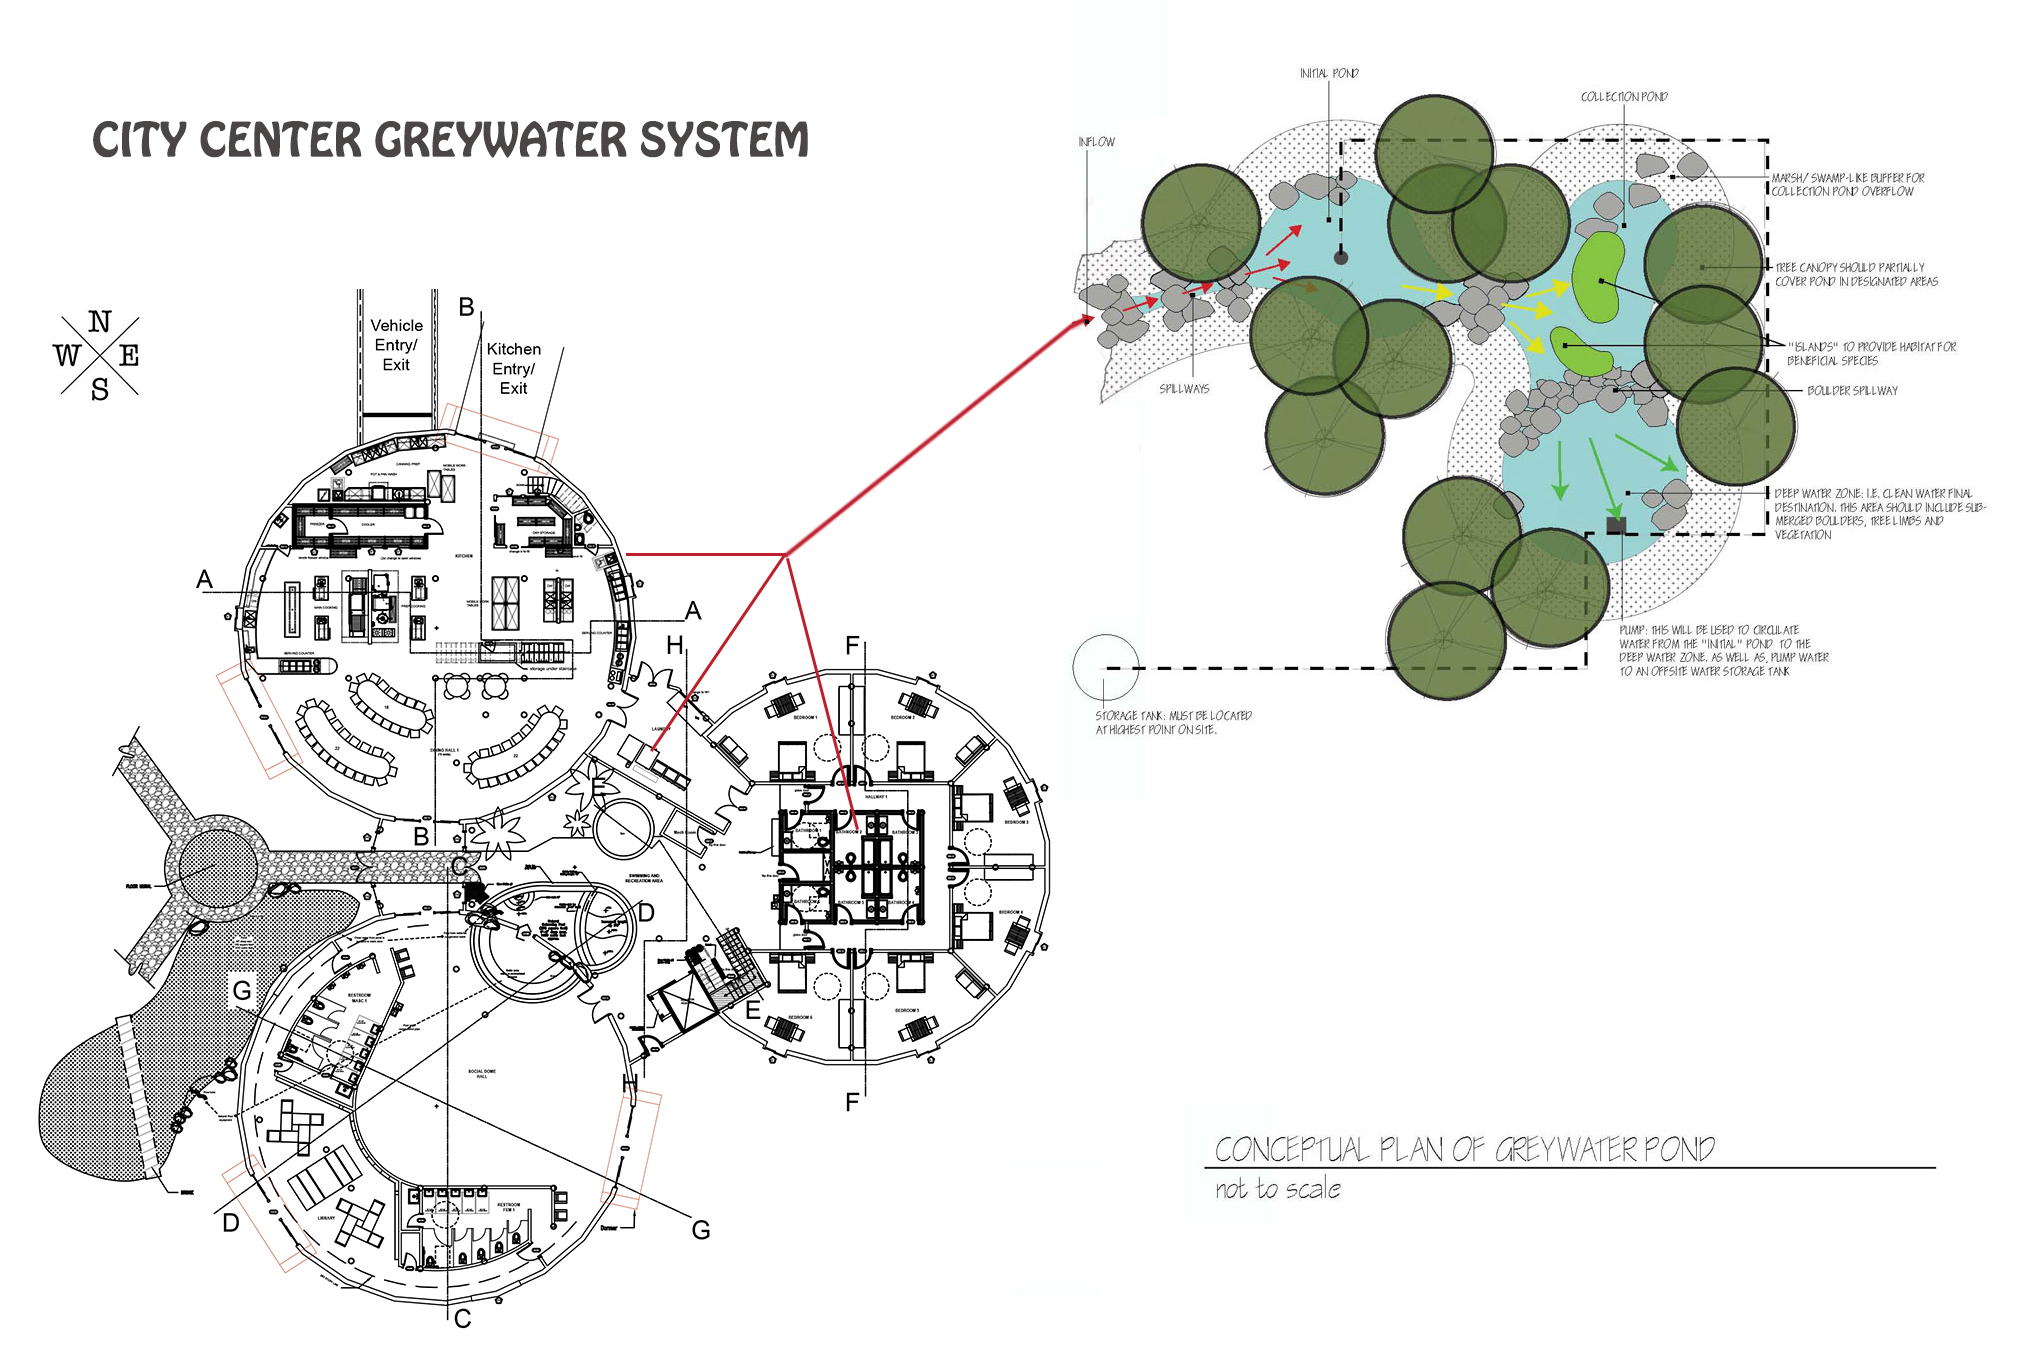 natural greywater system eco-sustems green living sustainable water City Center  sc 1 st  One Community Global & Open Source Natural Greywater Cleansing and Processing System Design